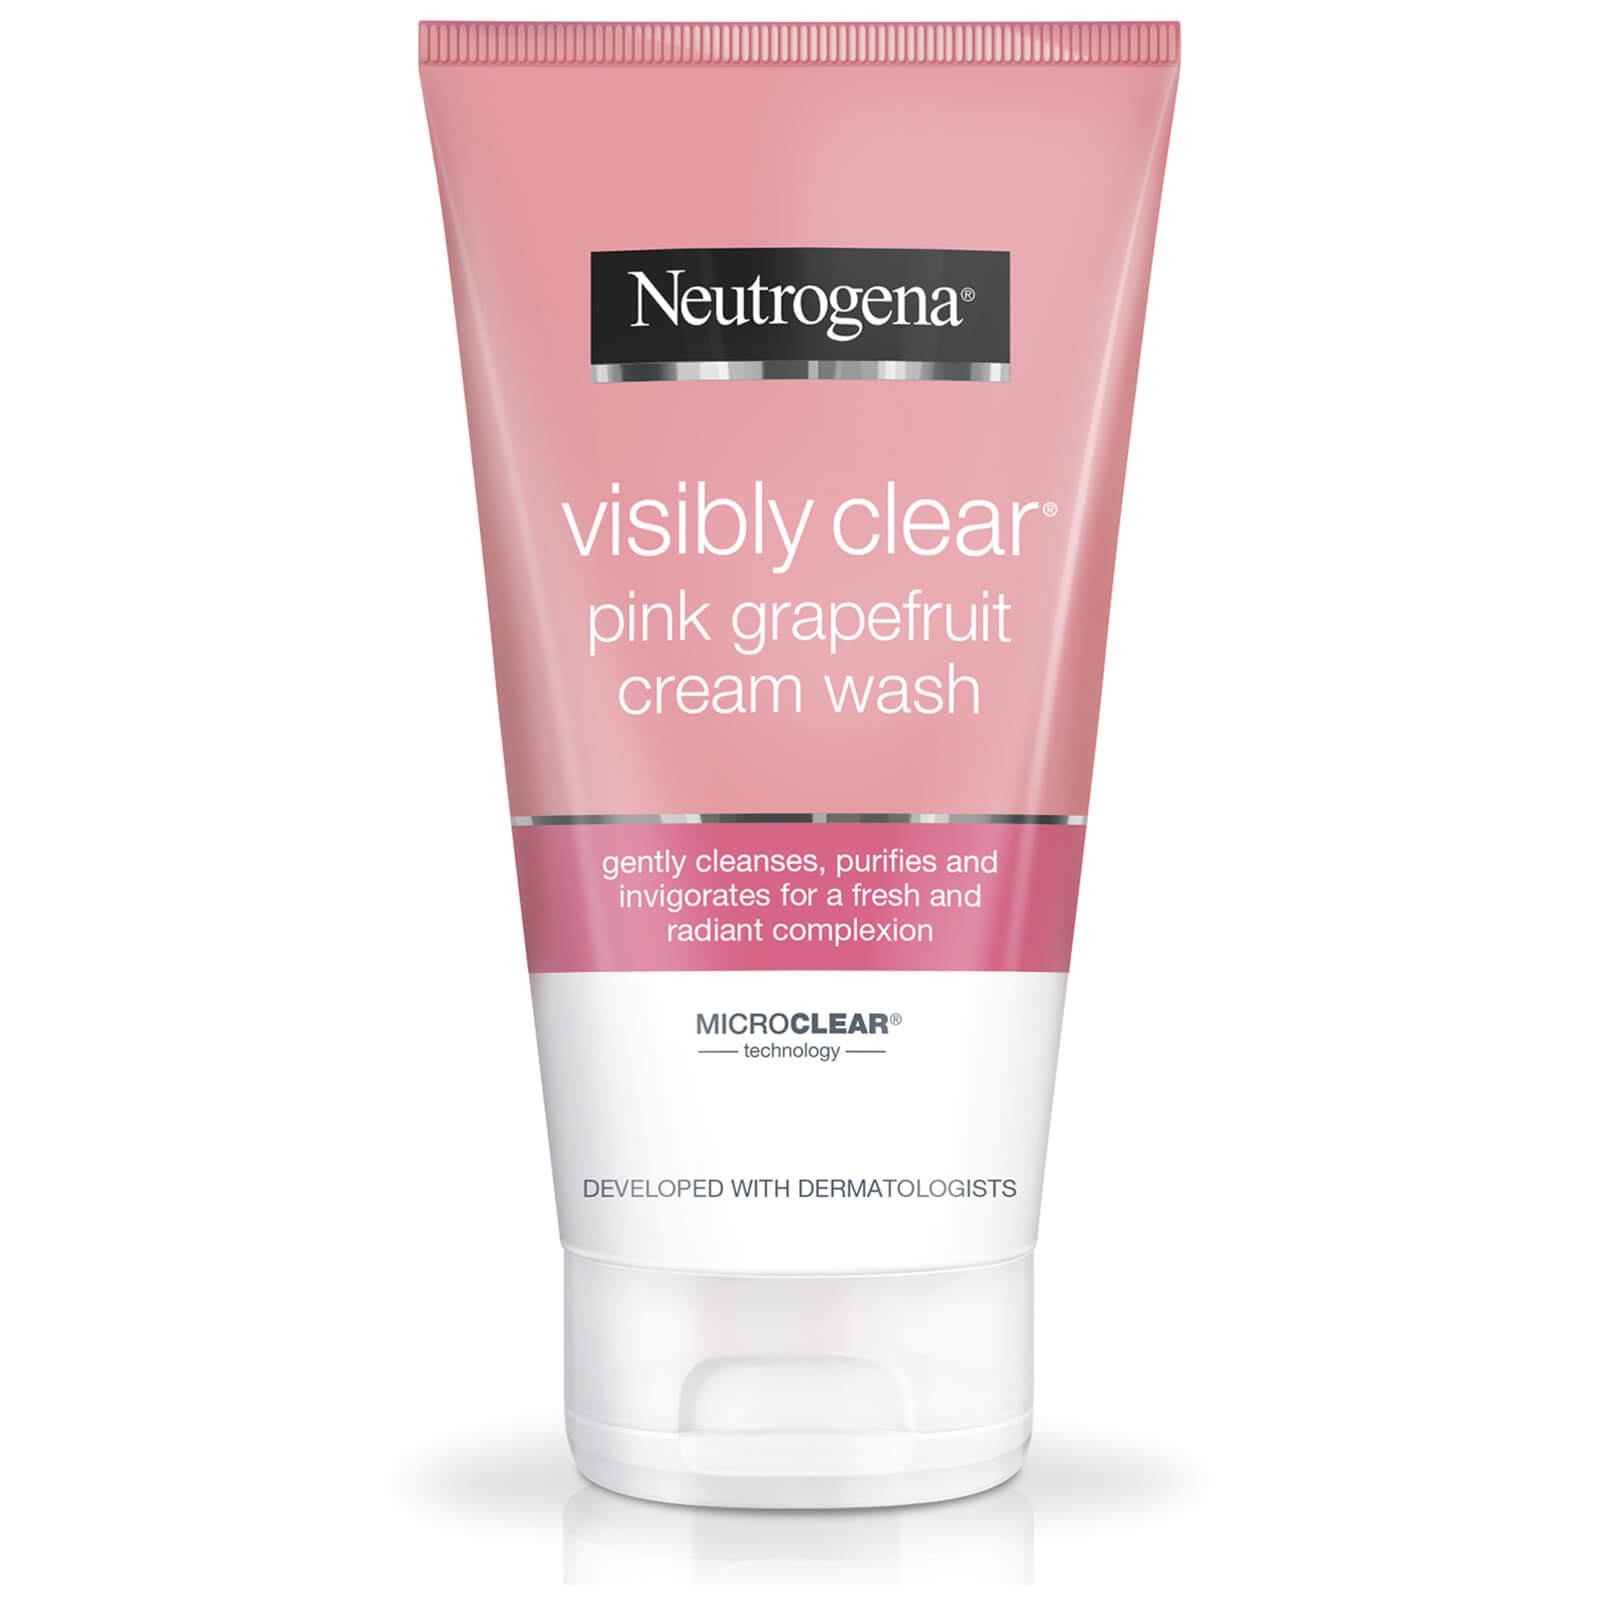 Neutrogena Visibly Clear Pink Grapefruit Cream Wash, 150 ml